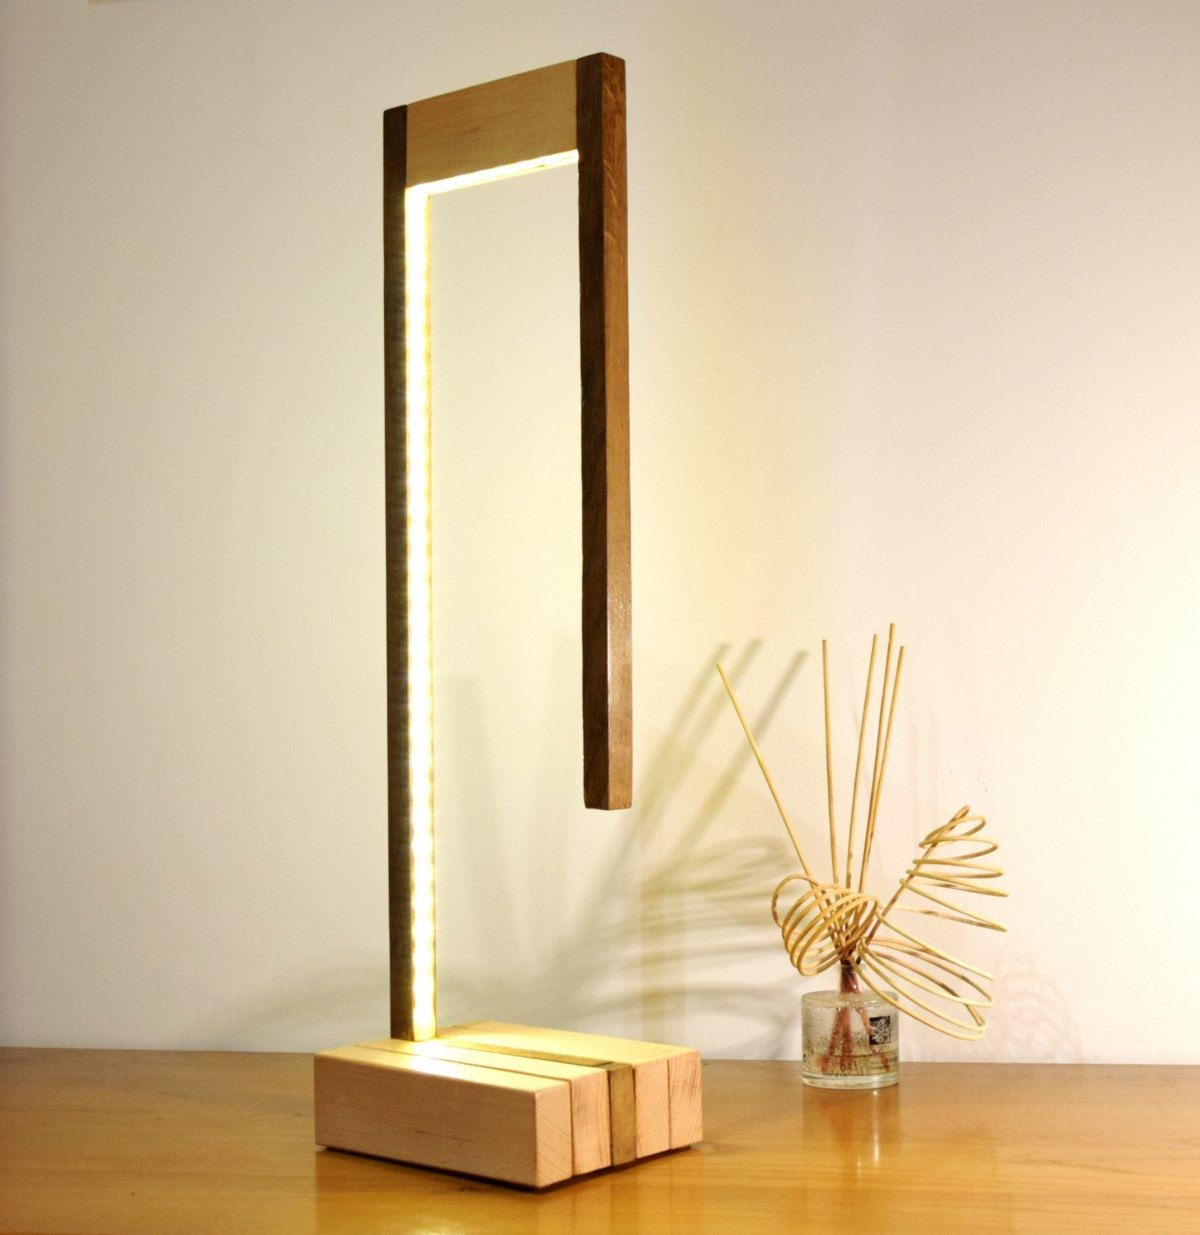 Wuturo Lamp In Natural Beech And Tinted Oak Lampe Bois Design Lampe Bois Luminaire Bois